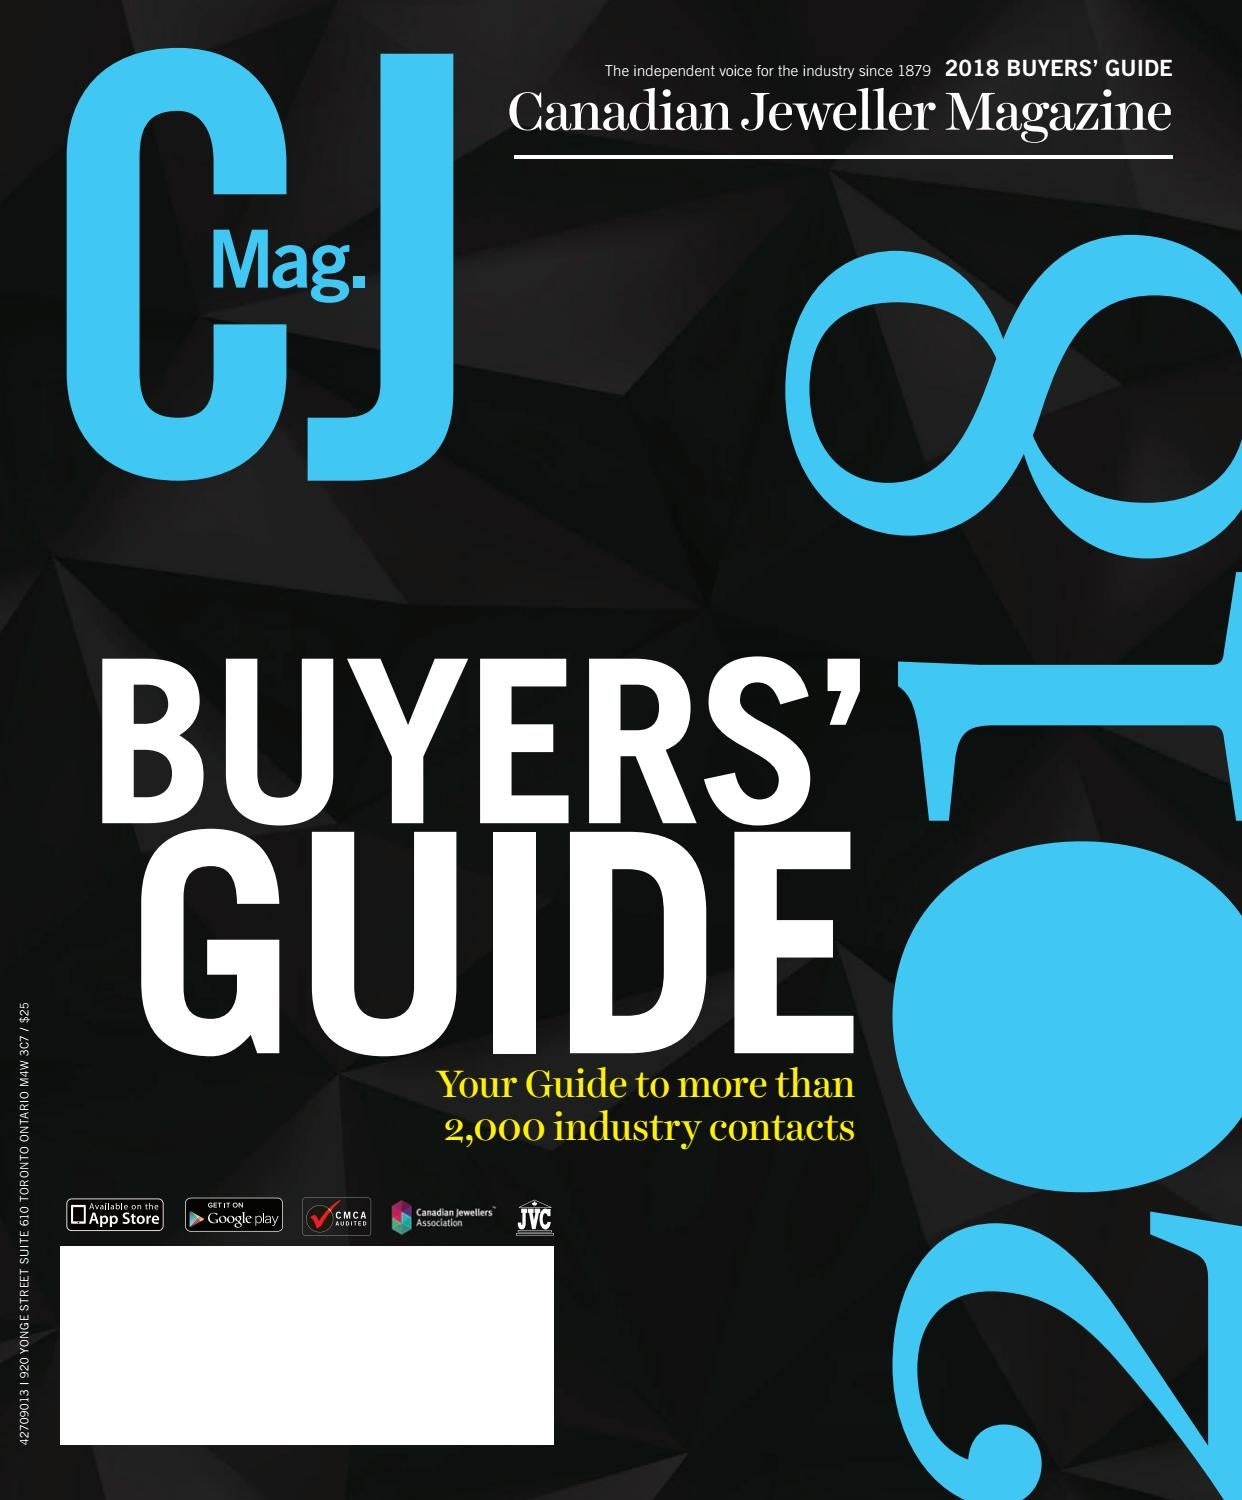 Cj 2018 Buyers Guide Preview By Canadian Jeweller Magazine Issuu